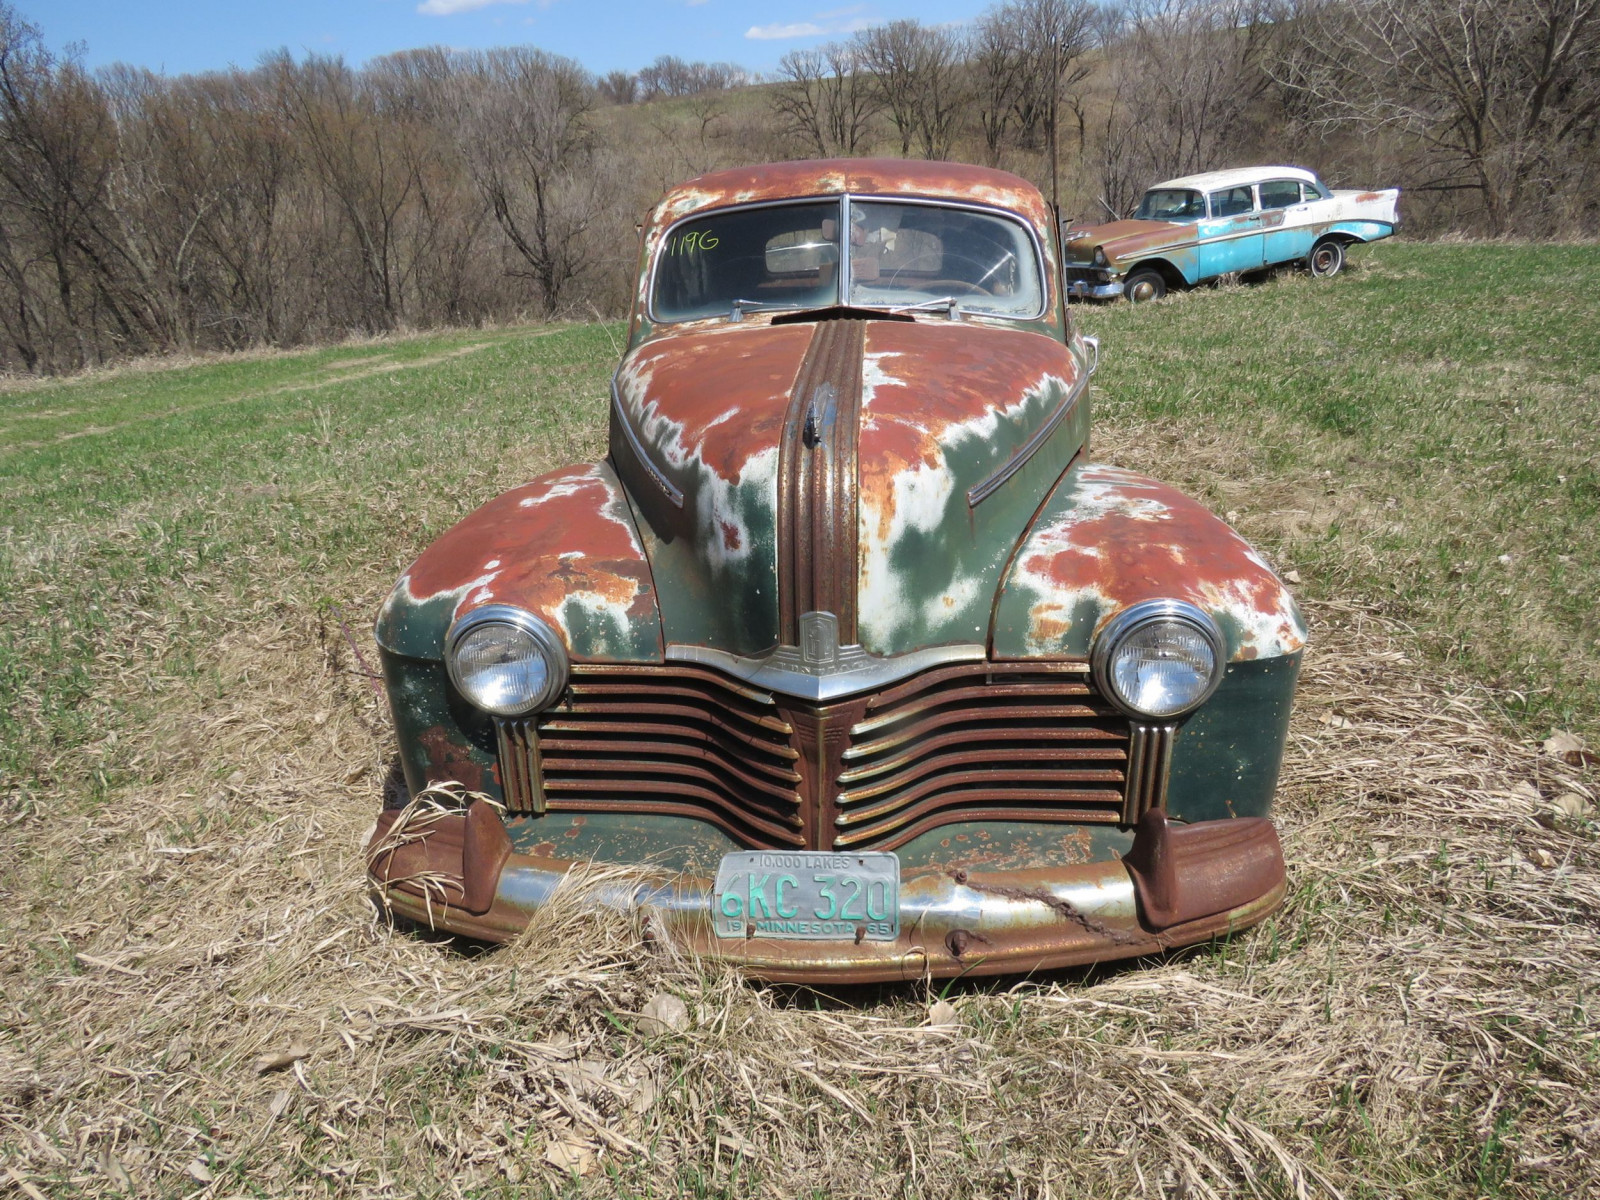 1940's Pontiac 2dr Sedan for Project or Parts - Image 2